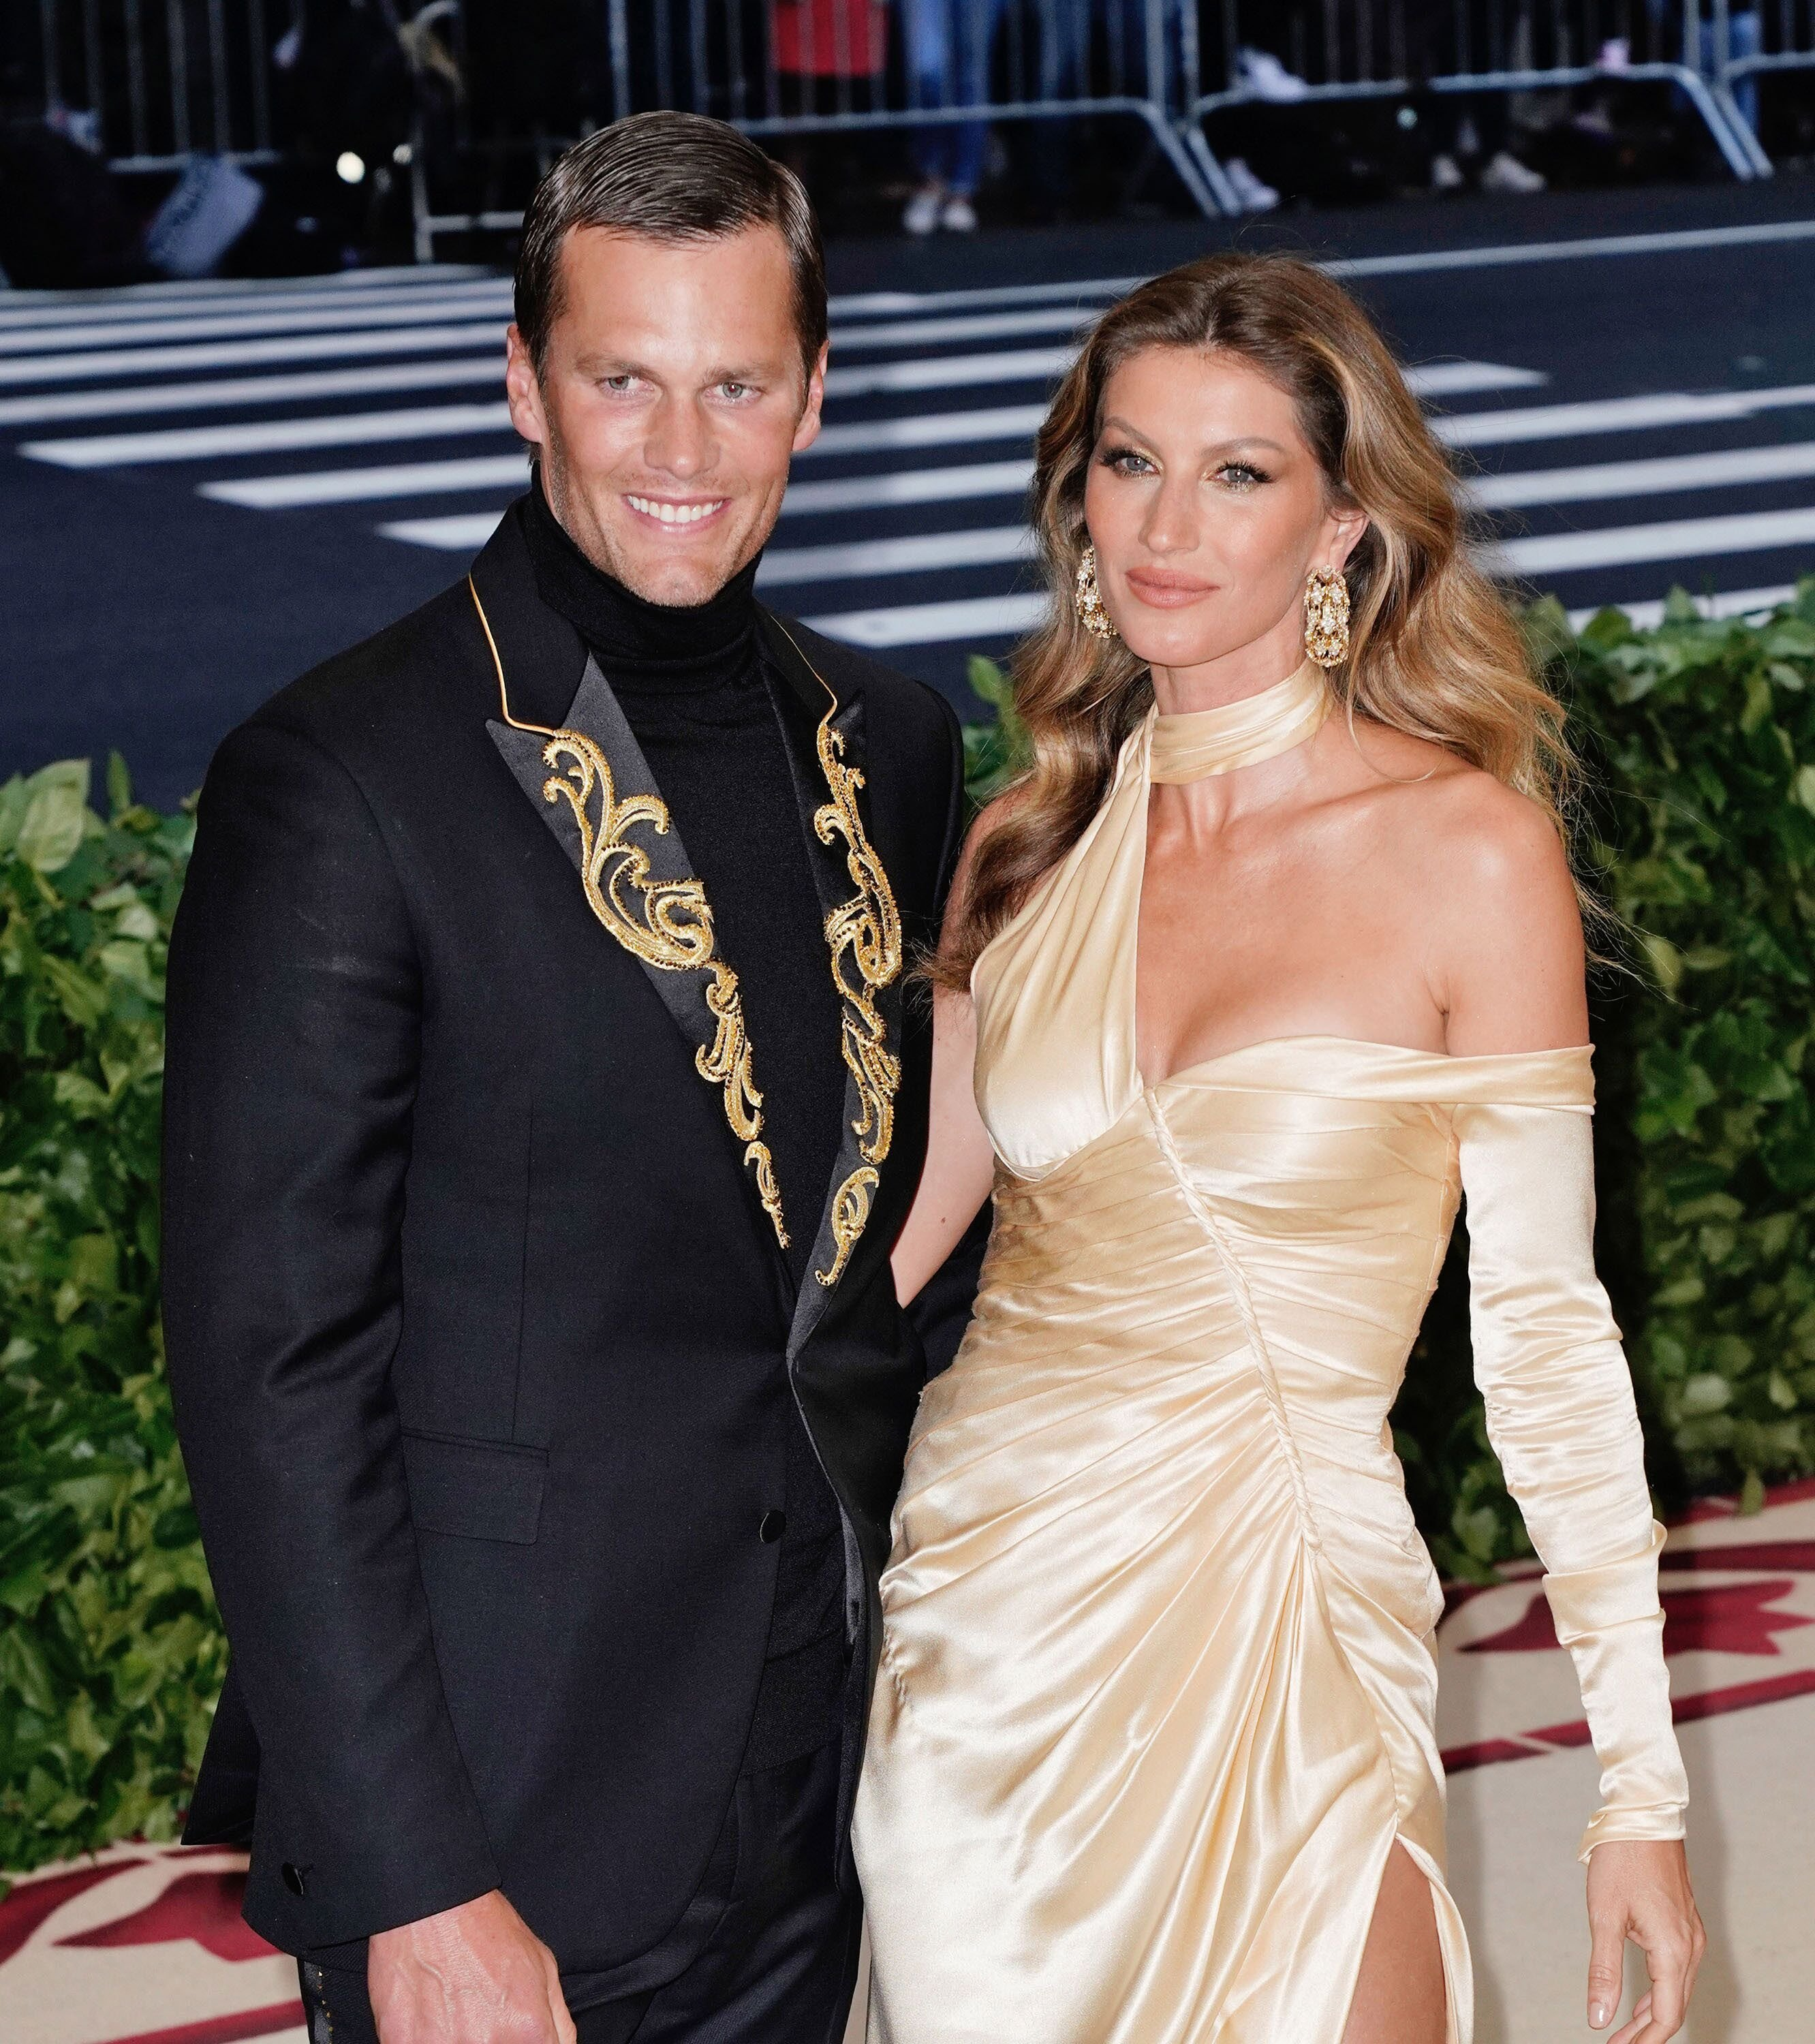 Gisele Bundchen and Tom Brady attend the Heavenly Bodies: Fashion & The Catholic Imagination Costume Institute Gala. | Source: Getty Images